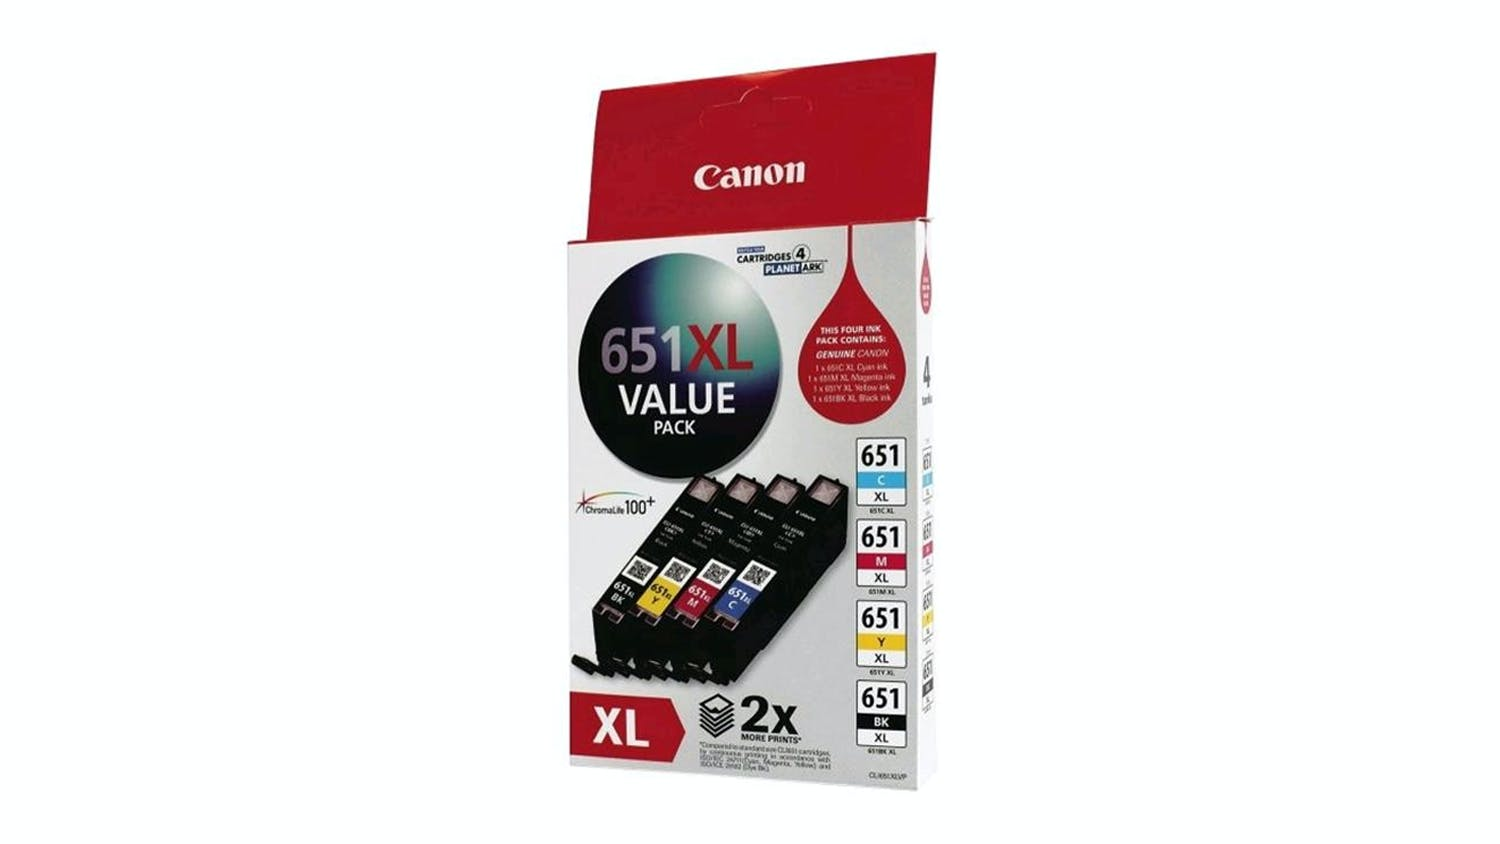 Canon CL651XL High Yield Ink Cartridge - Value Pack